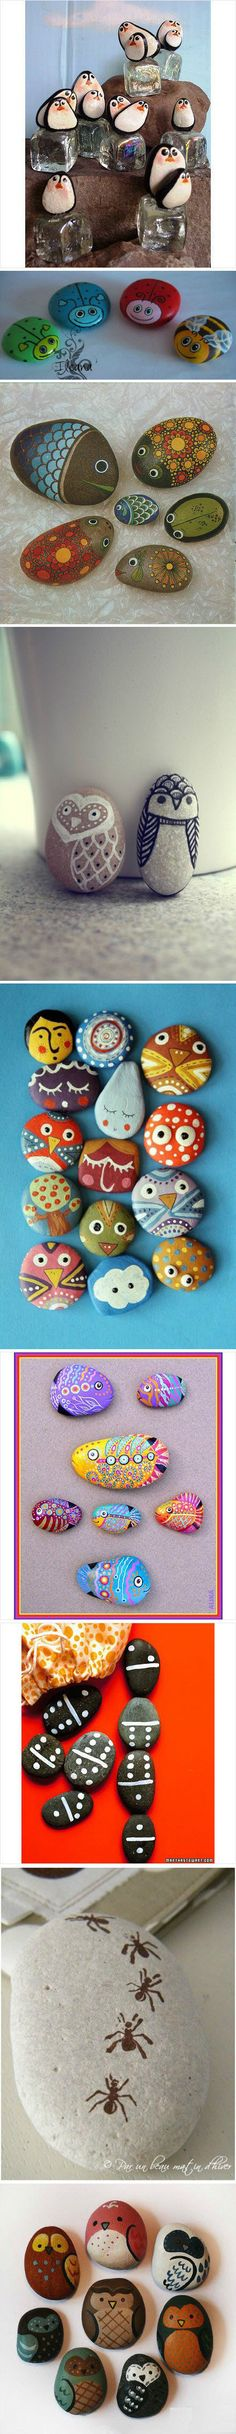 Painted rocks inspiration.